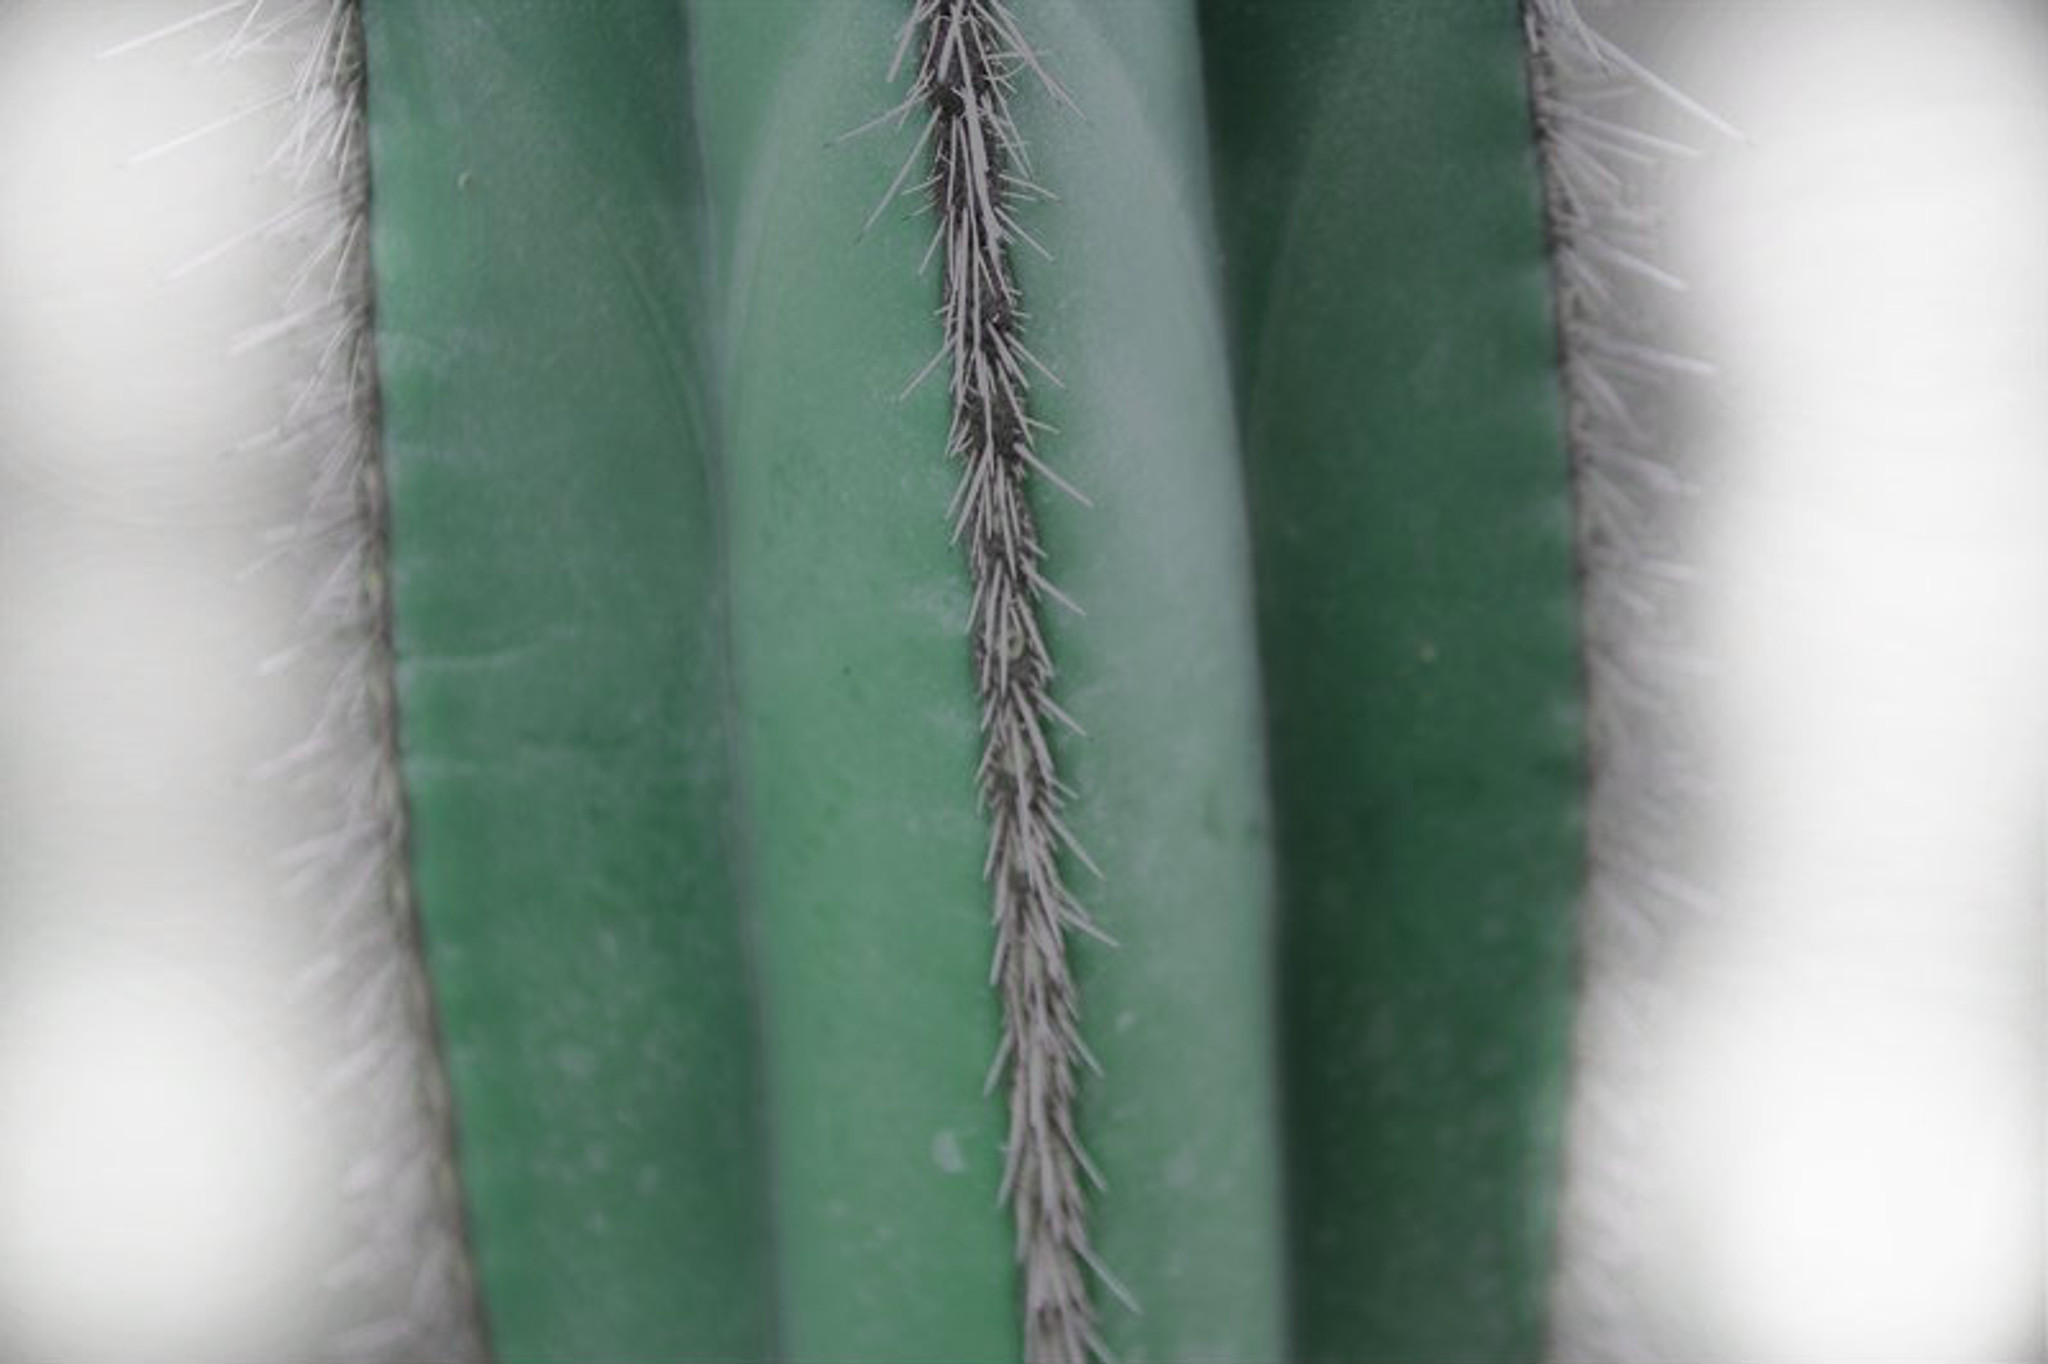 Stenocereus Marginatus Cereus Margin p35 Height 120 in a terracotta pot. Order online delivered straight to you or to address you like it to go to.  Large cactus planted in a terracotta pot for indoor or outdoor